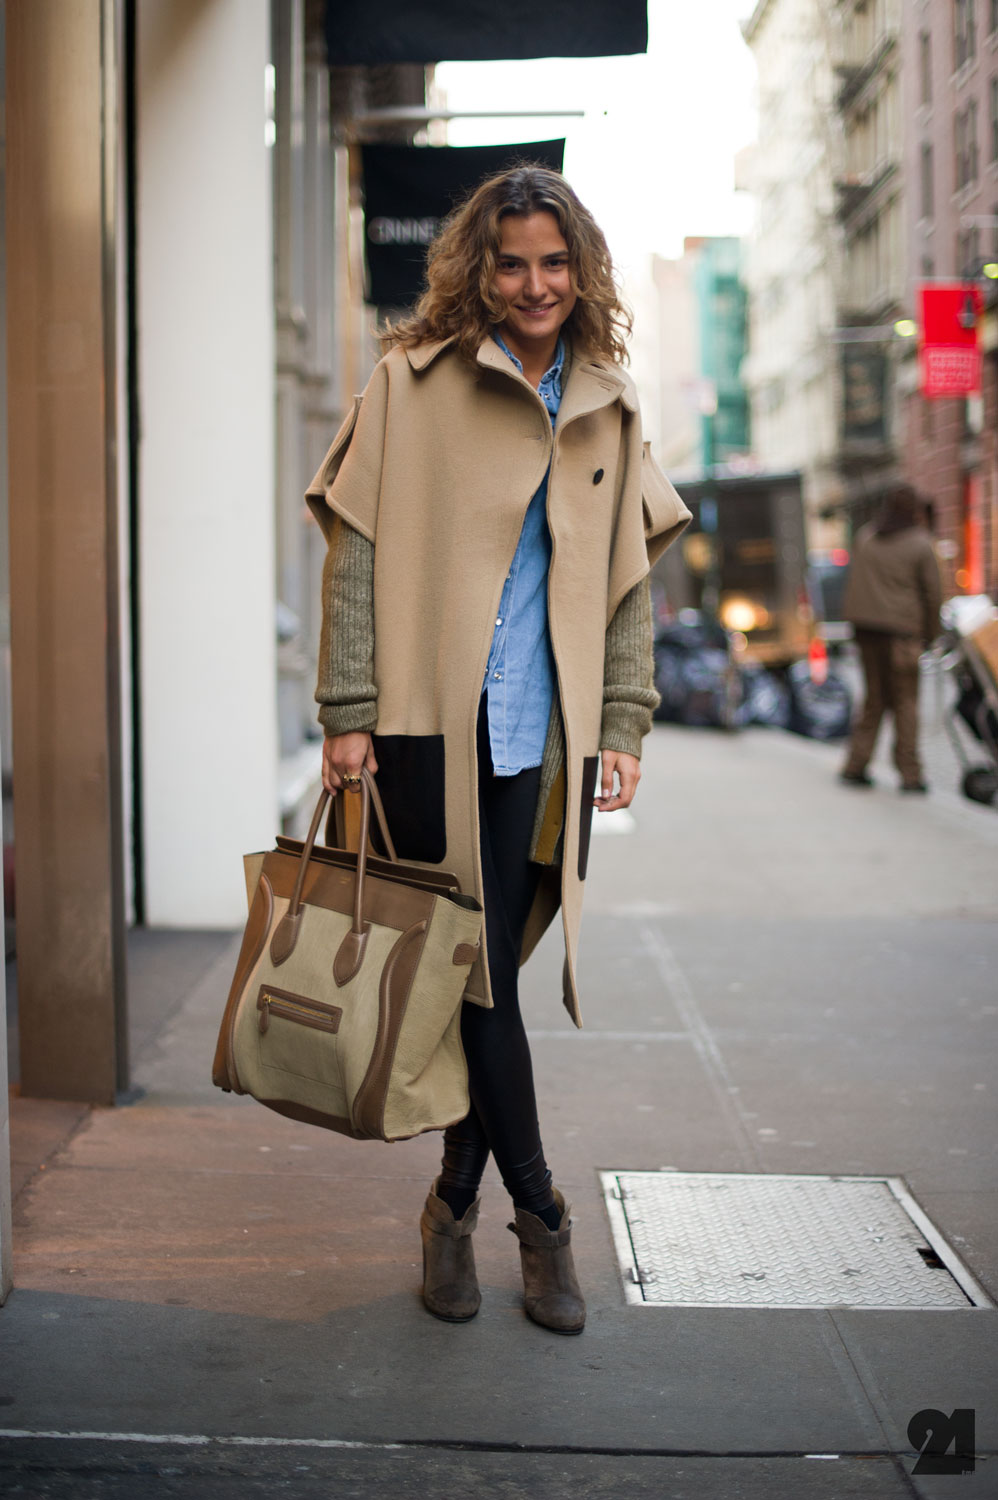 Street Style India Fashion Blog: Taso's Blog: New York Street Style